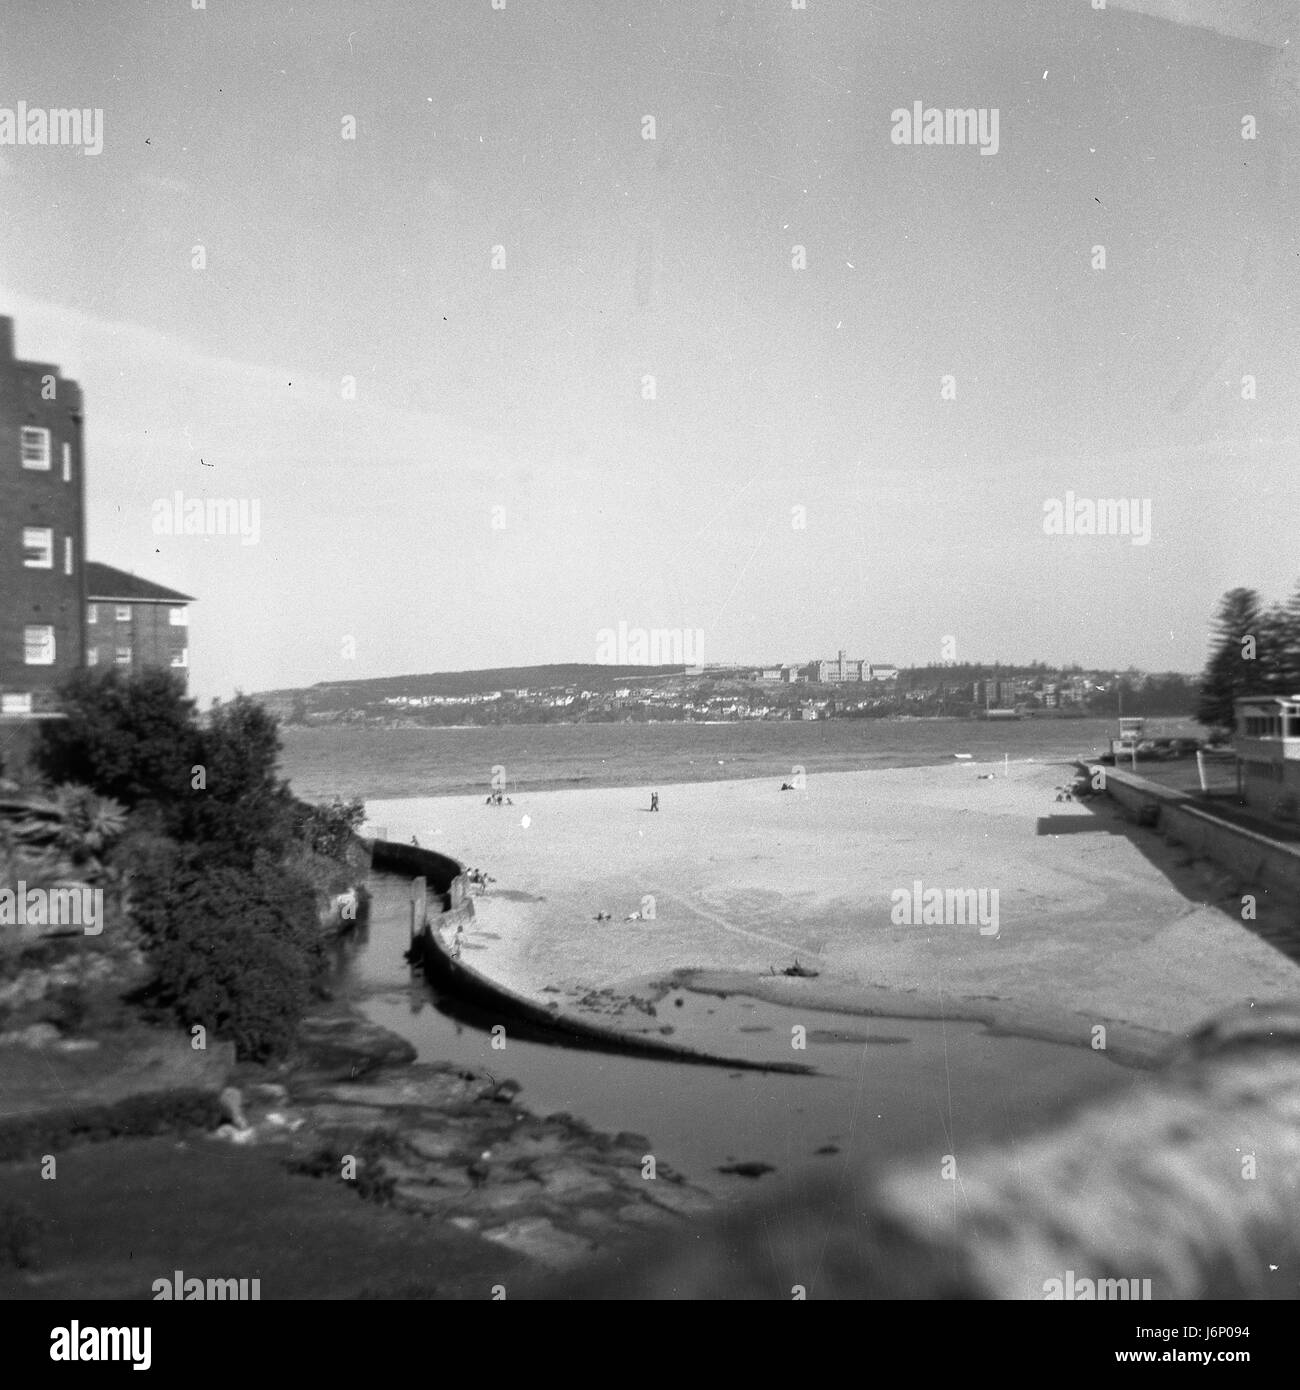 THIS IS A DIGITAL IMAGE RECORD FOR A FOUND DISCARDED UNWANTED PHOTOGRAPHIC PRINT GLASS PLATE OR FILM NEGATIVE OR - Stock Image